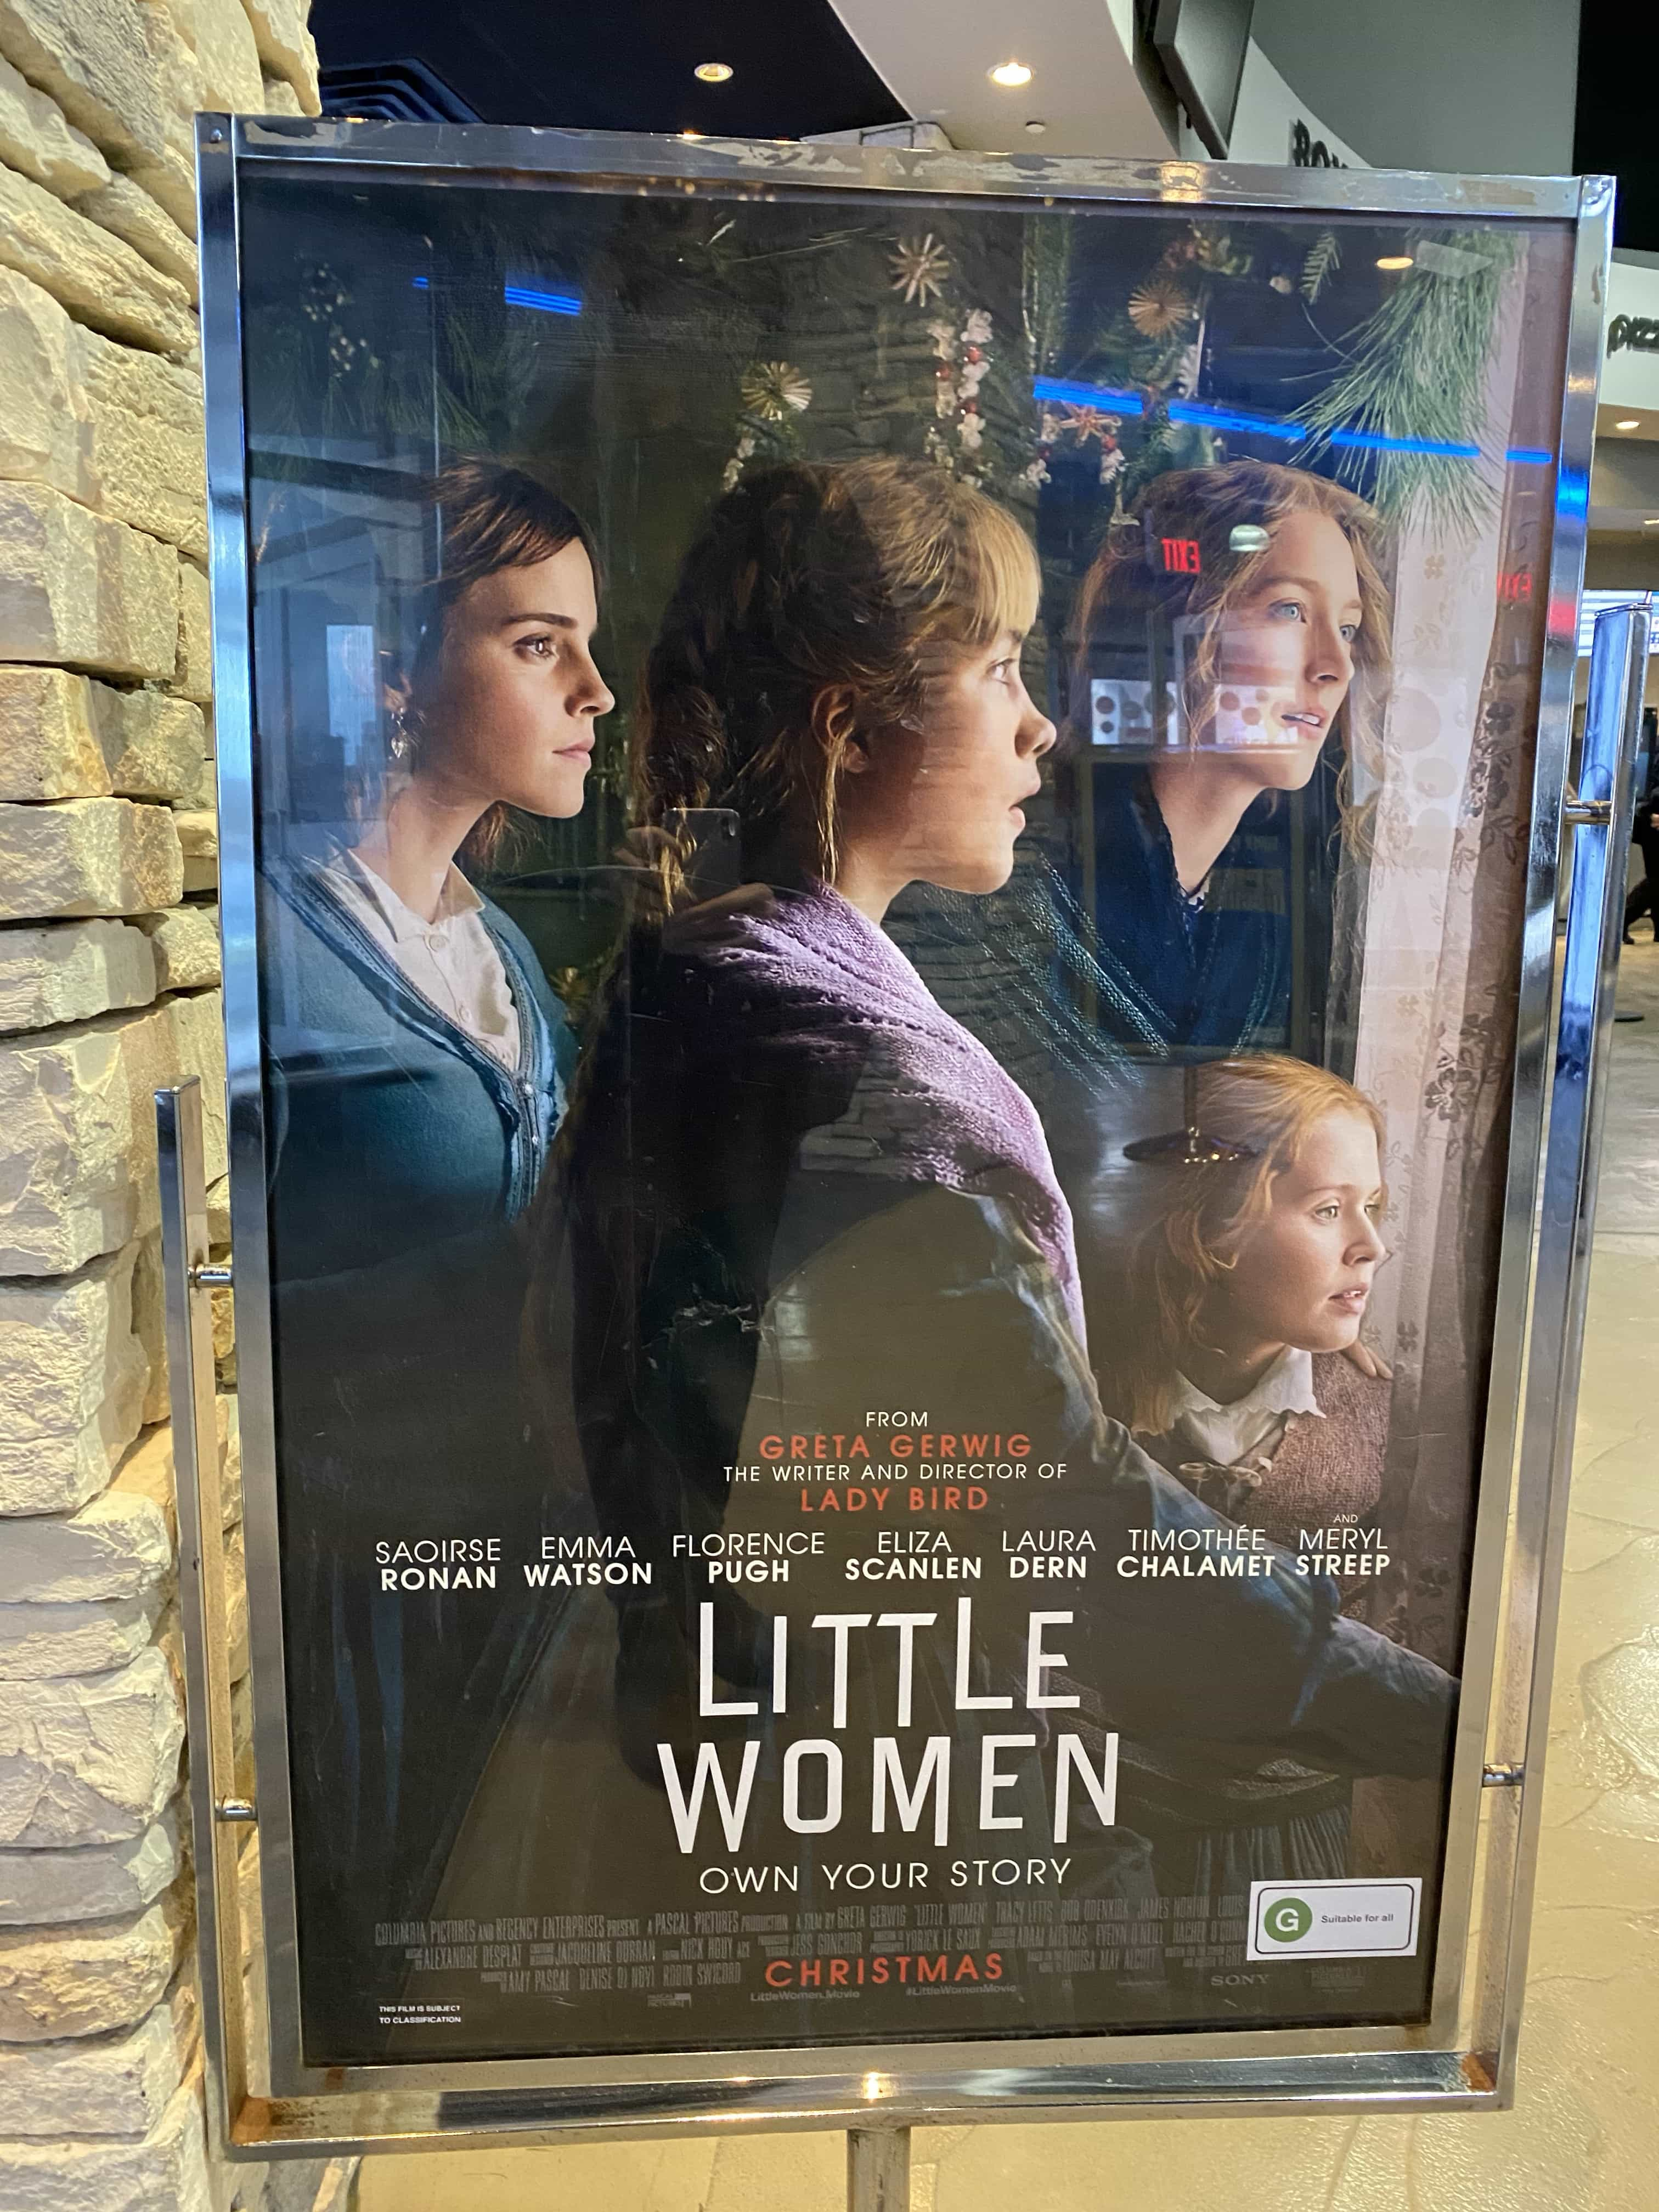 Little Women: A new take on an old story